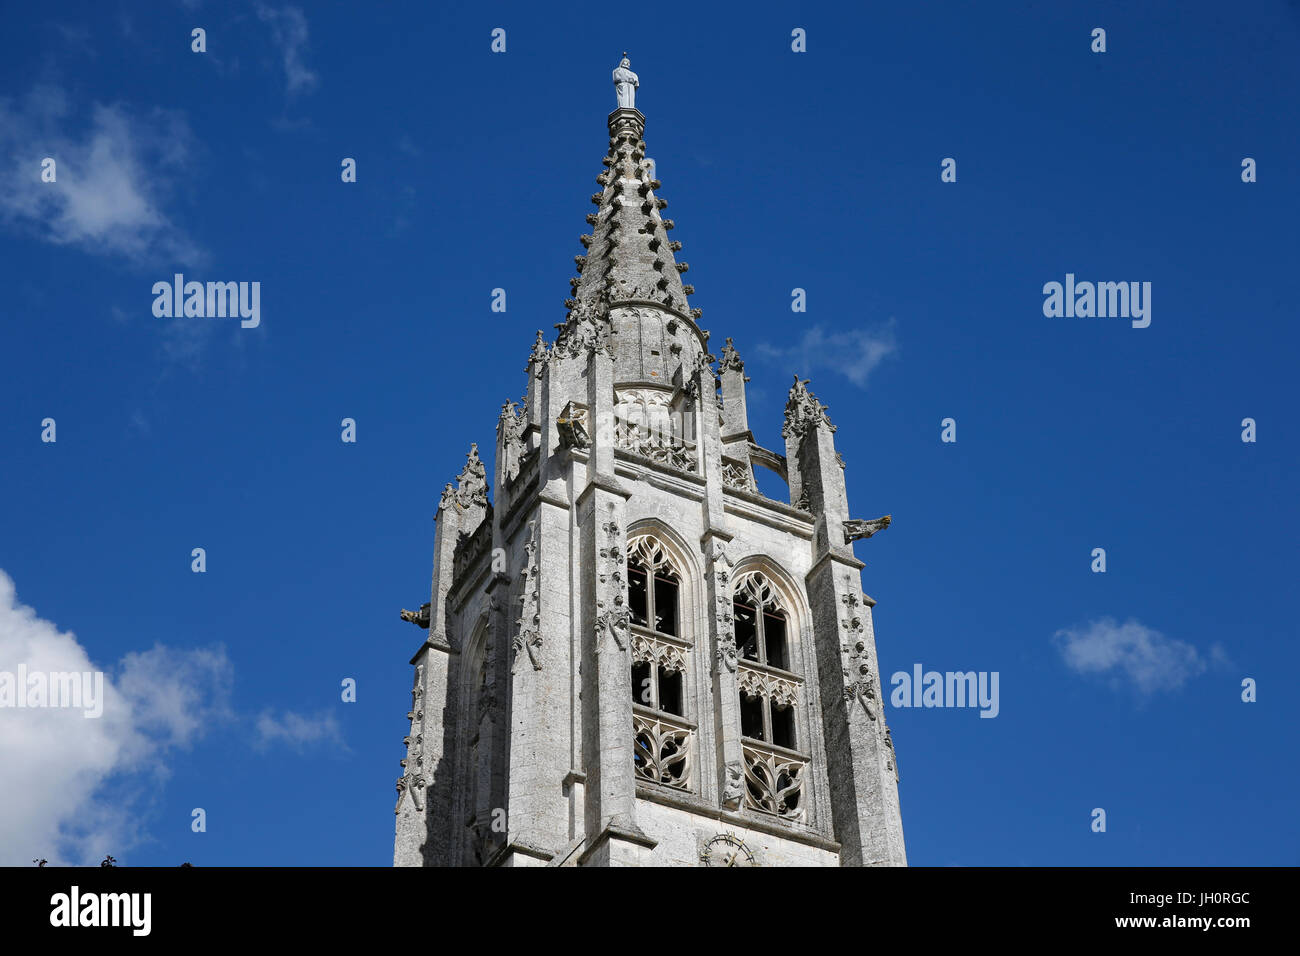 St Peter's church spire, Beaumontel. France. - Stock Image